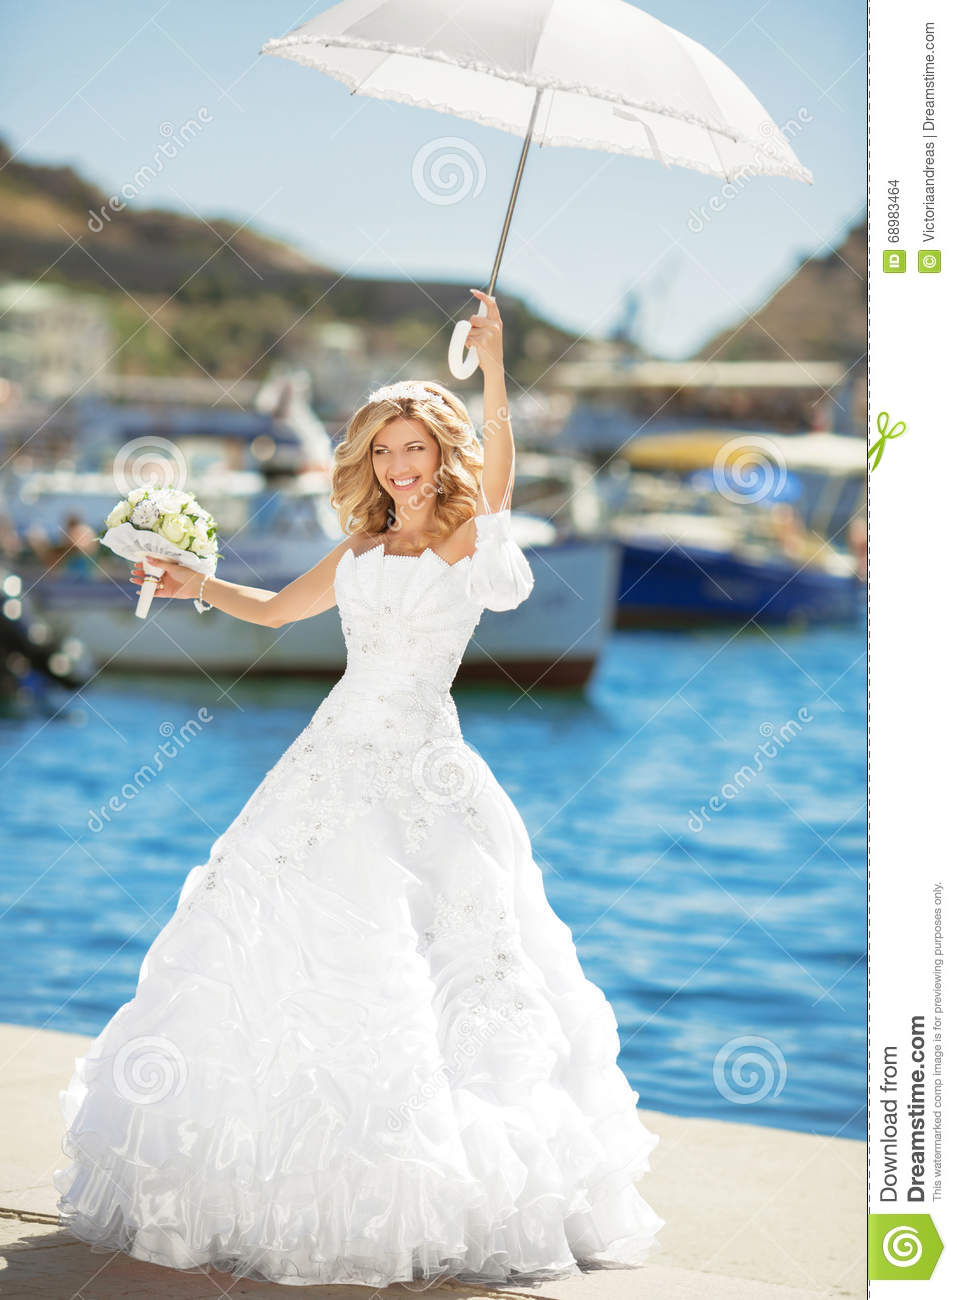 Beautiful Smiling Bride In Wedding Dress With White Umbrella Pos ...